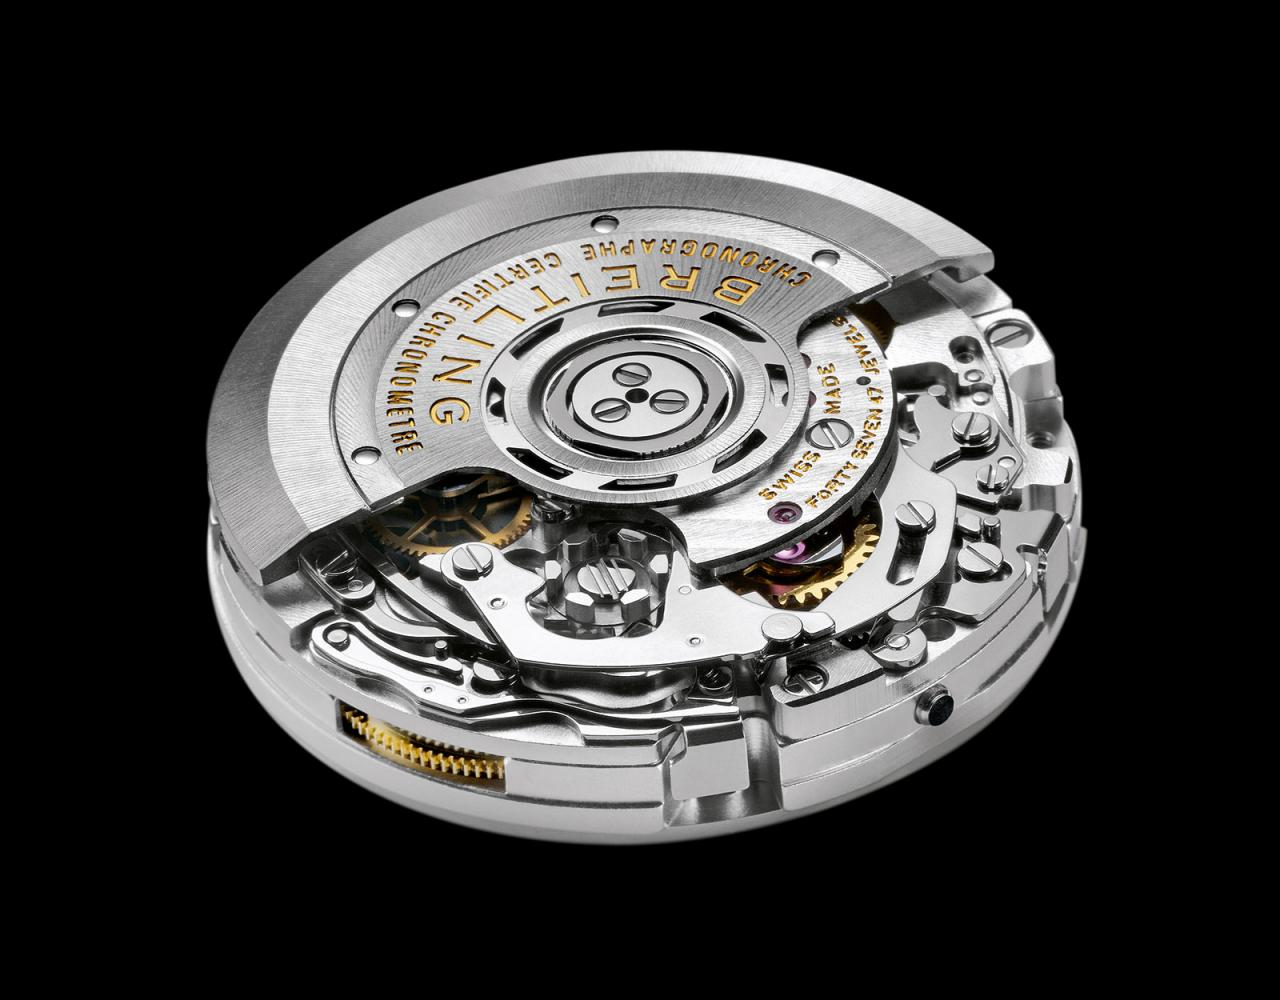 Breitling 01 B01 chronograph movement